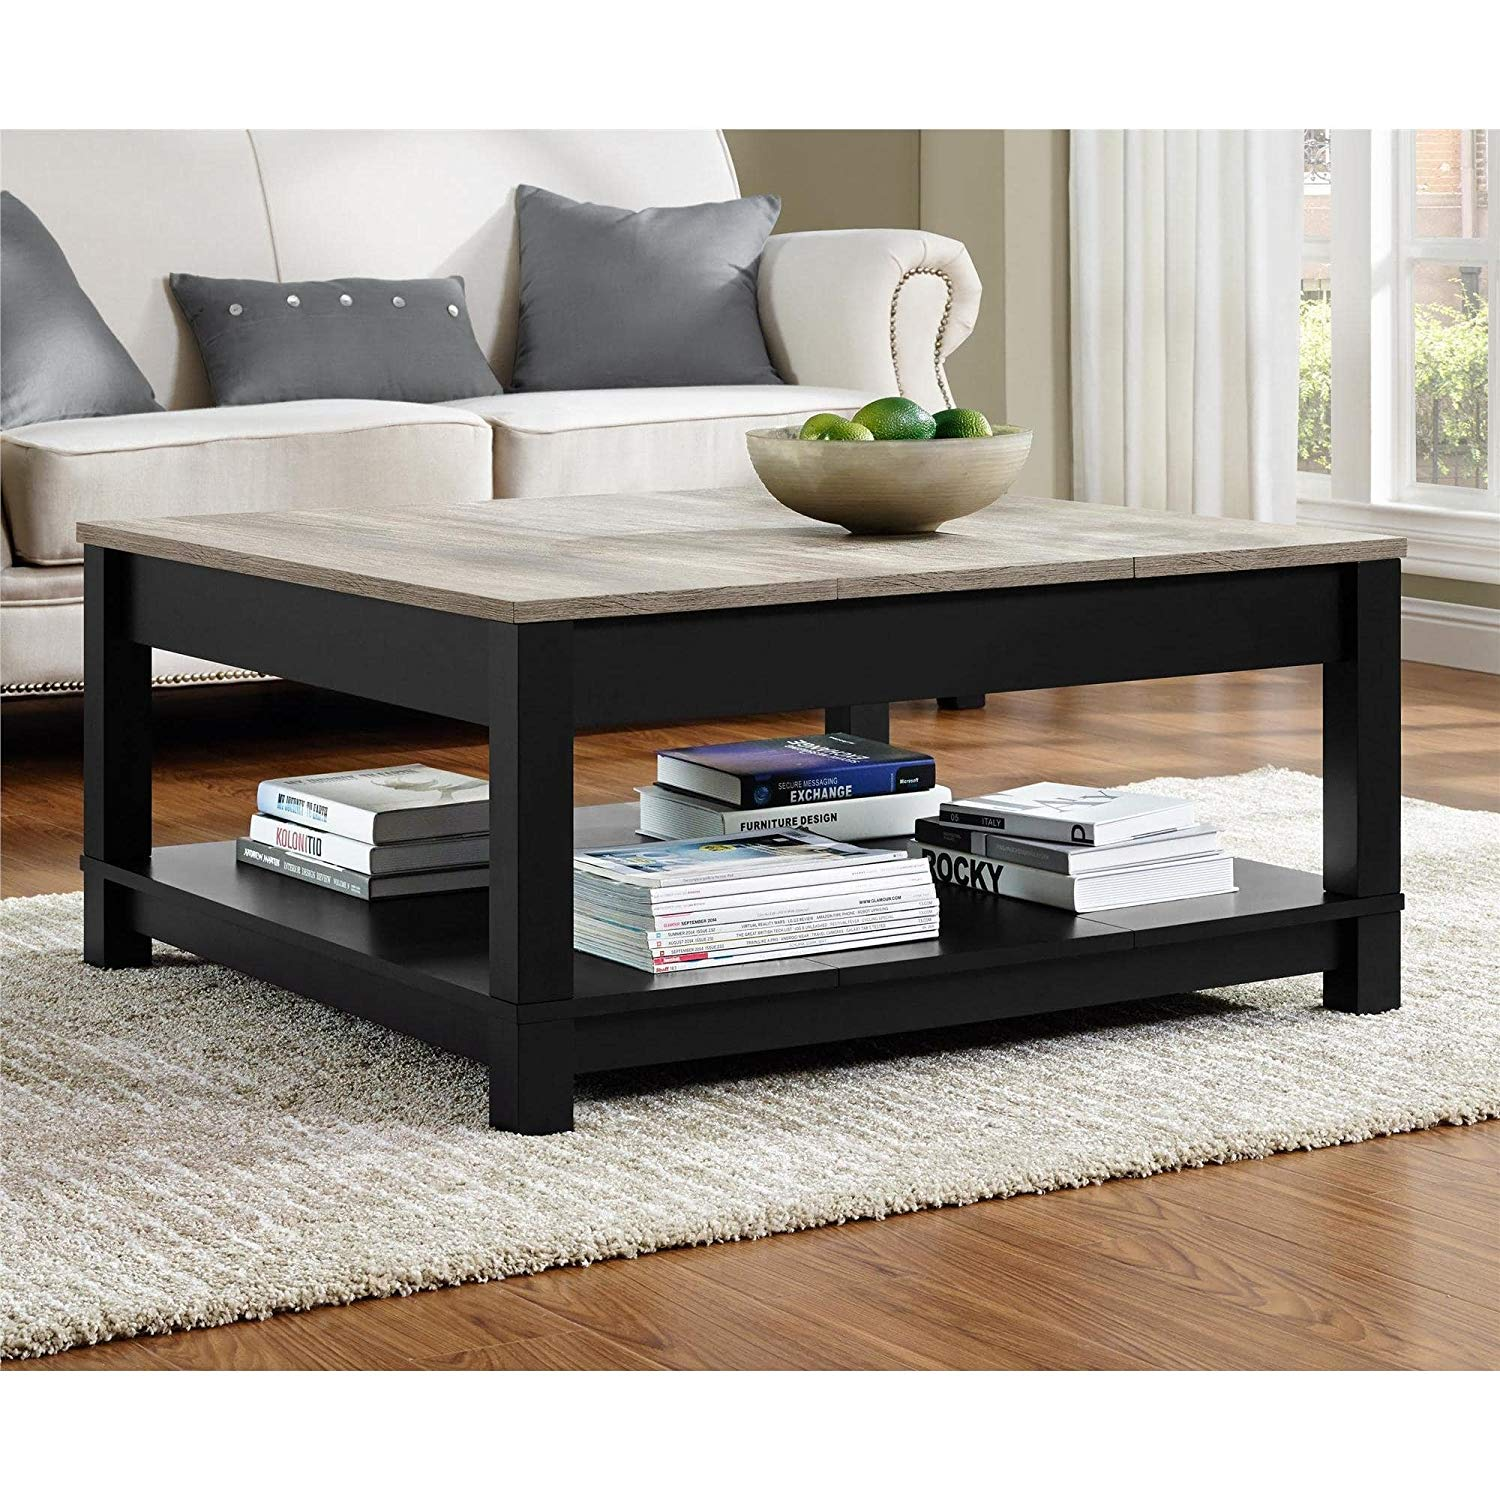 mainstays coffee table black oak finish end assembly instructions stylish spacious bottom shelf finished all sides matte painted light cherry tables dark walnut nightstand glass